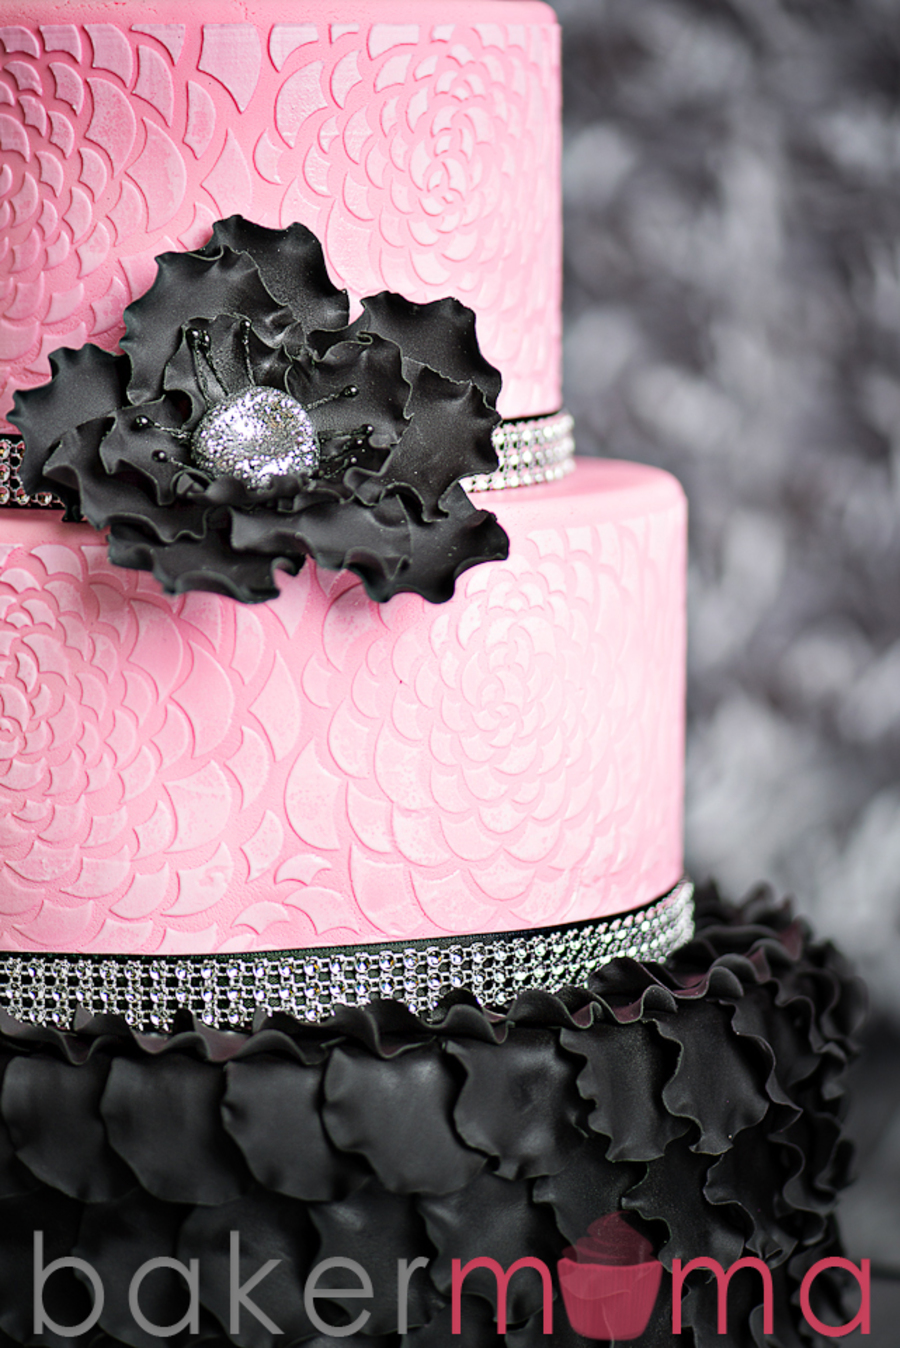 The Sensational Cakes: August 2015